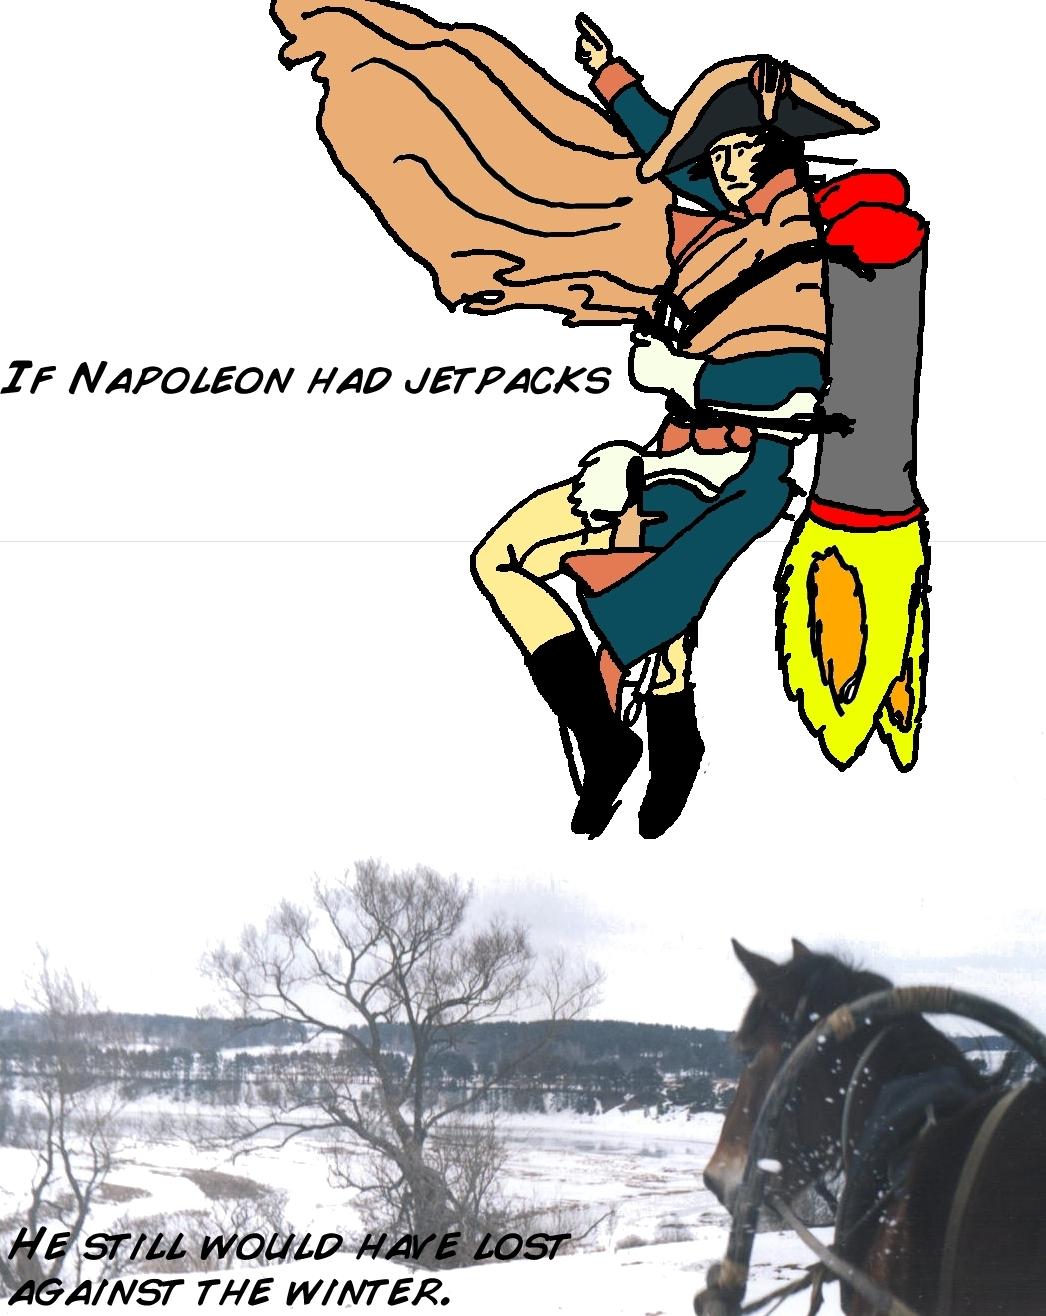 Napoleon with a jetpack